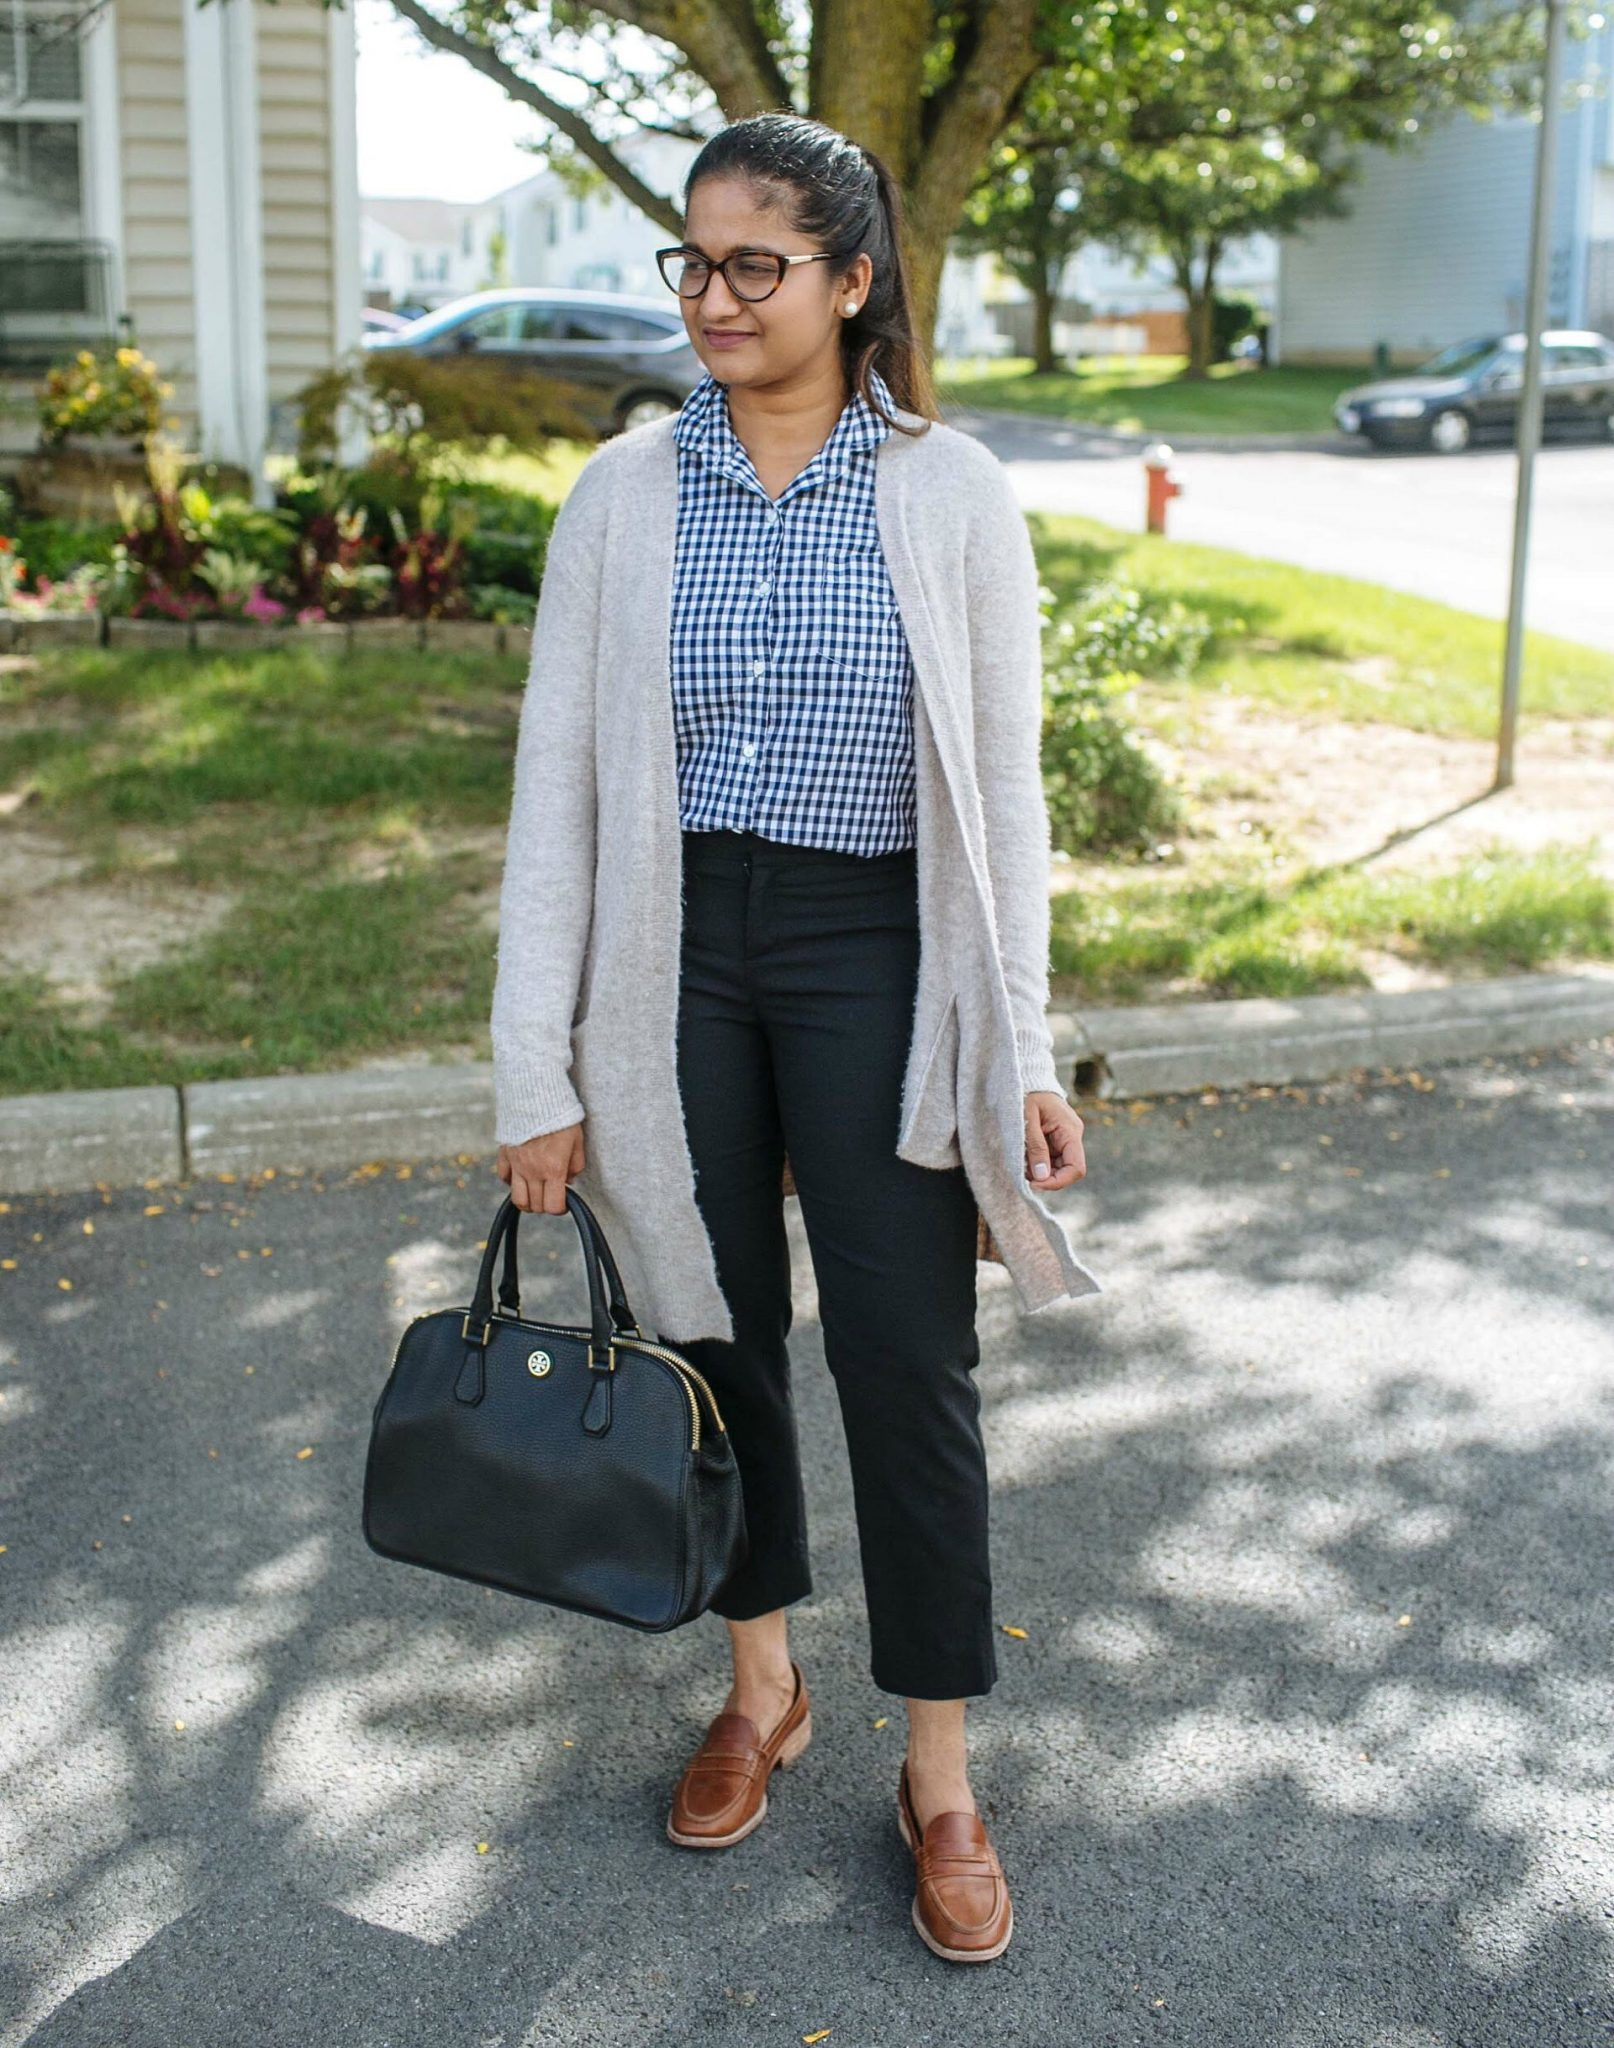 wearing madewell Kent Cardigan Sweater | 20 Outfit Fall colorful capsule wardrobe | Colorful Fall Work Outfits featured by popular US modest fashion blogger, Dreaming Loud